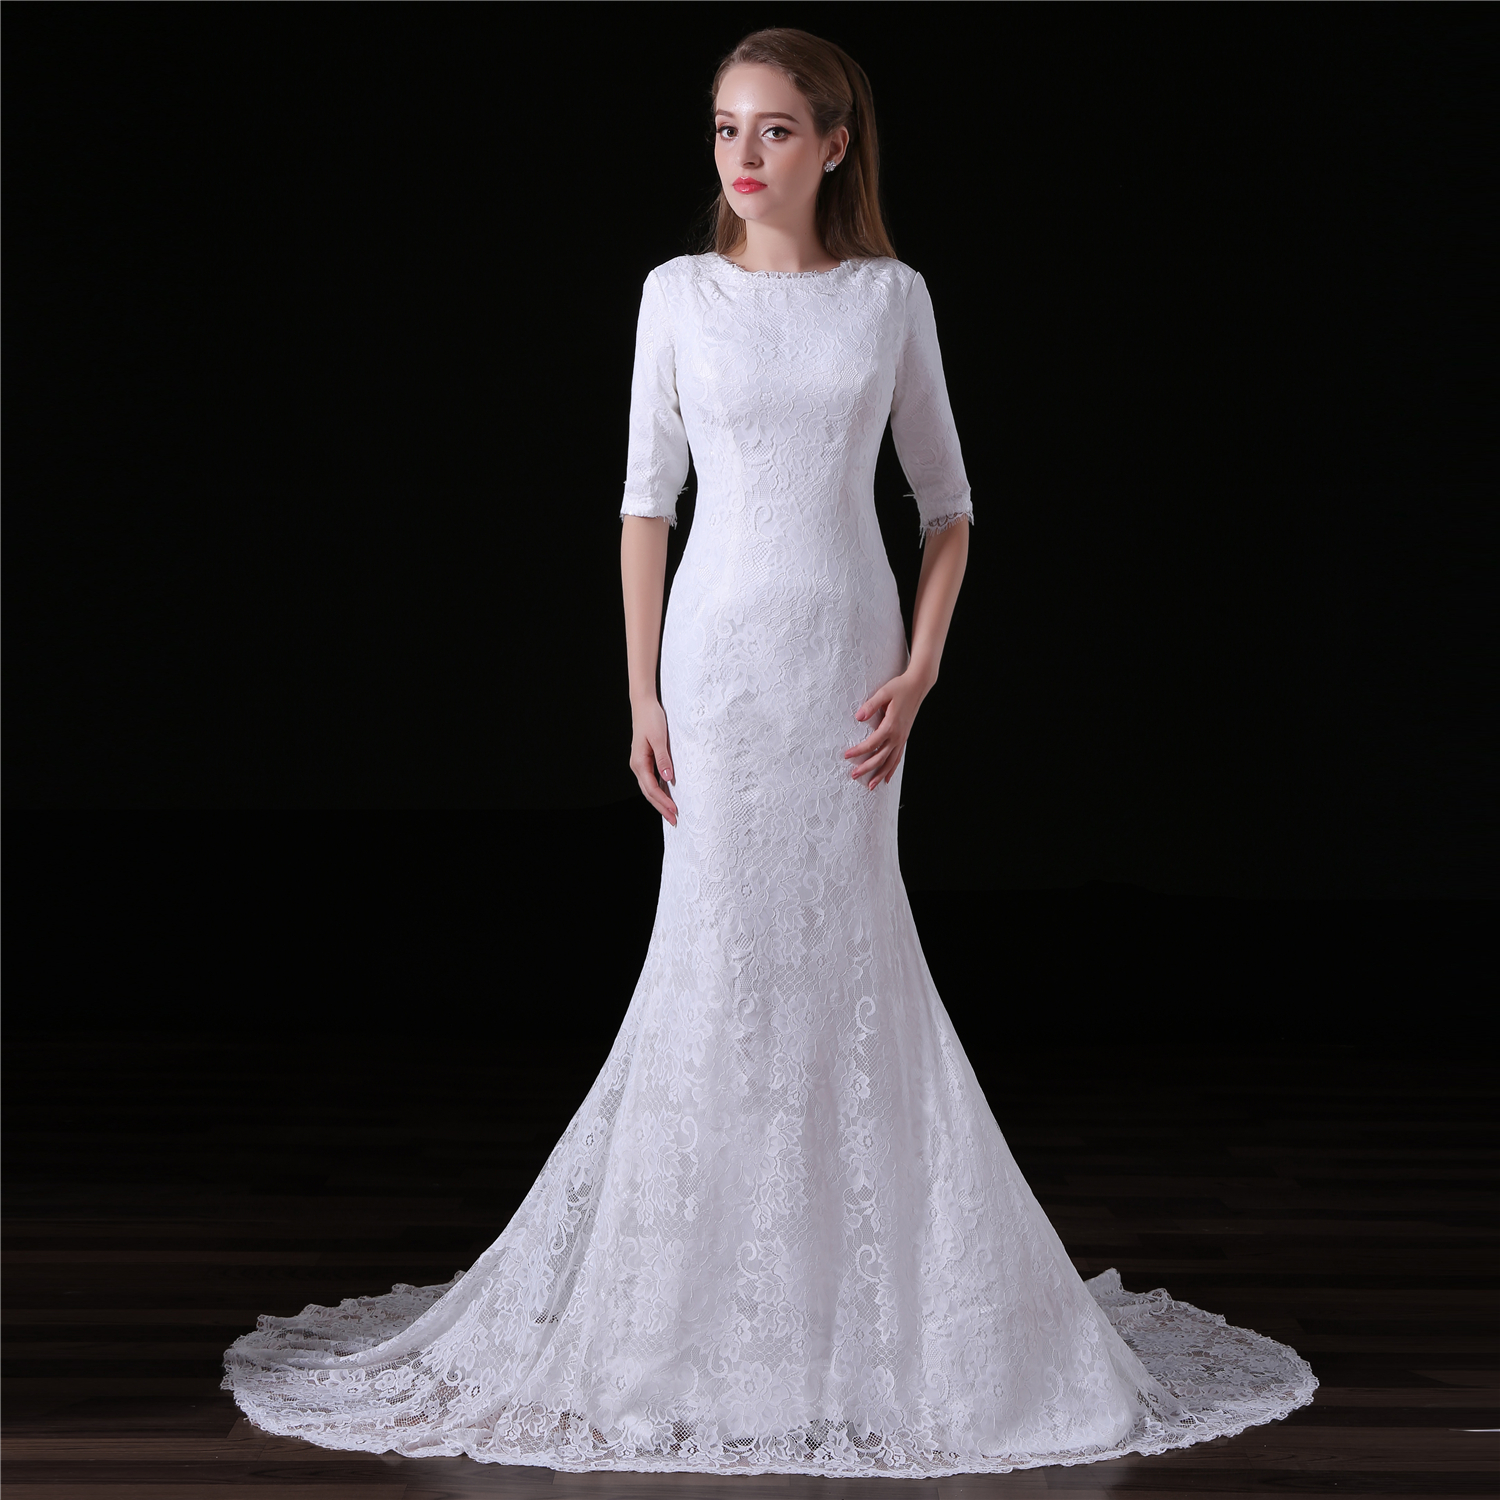 c41b38573f54 New Arrival Lace Mermaid Wedding Dresses With Half Sleeve And O Neck on  Luulla